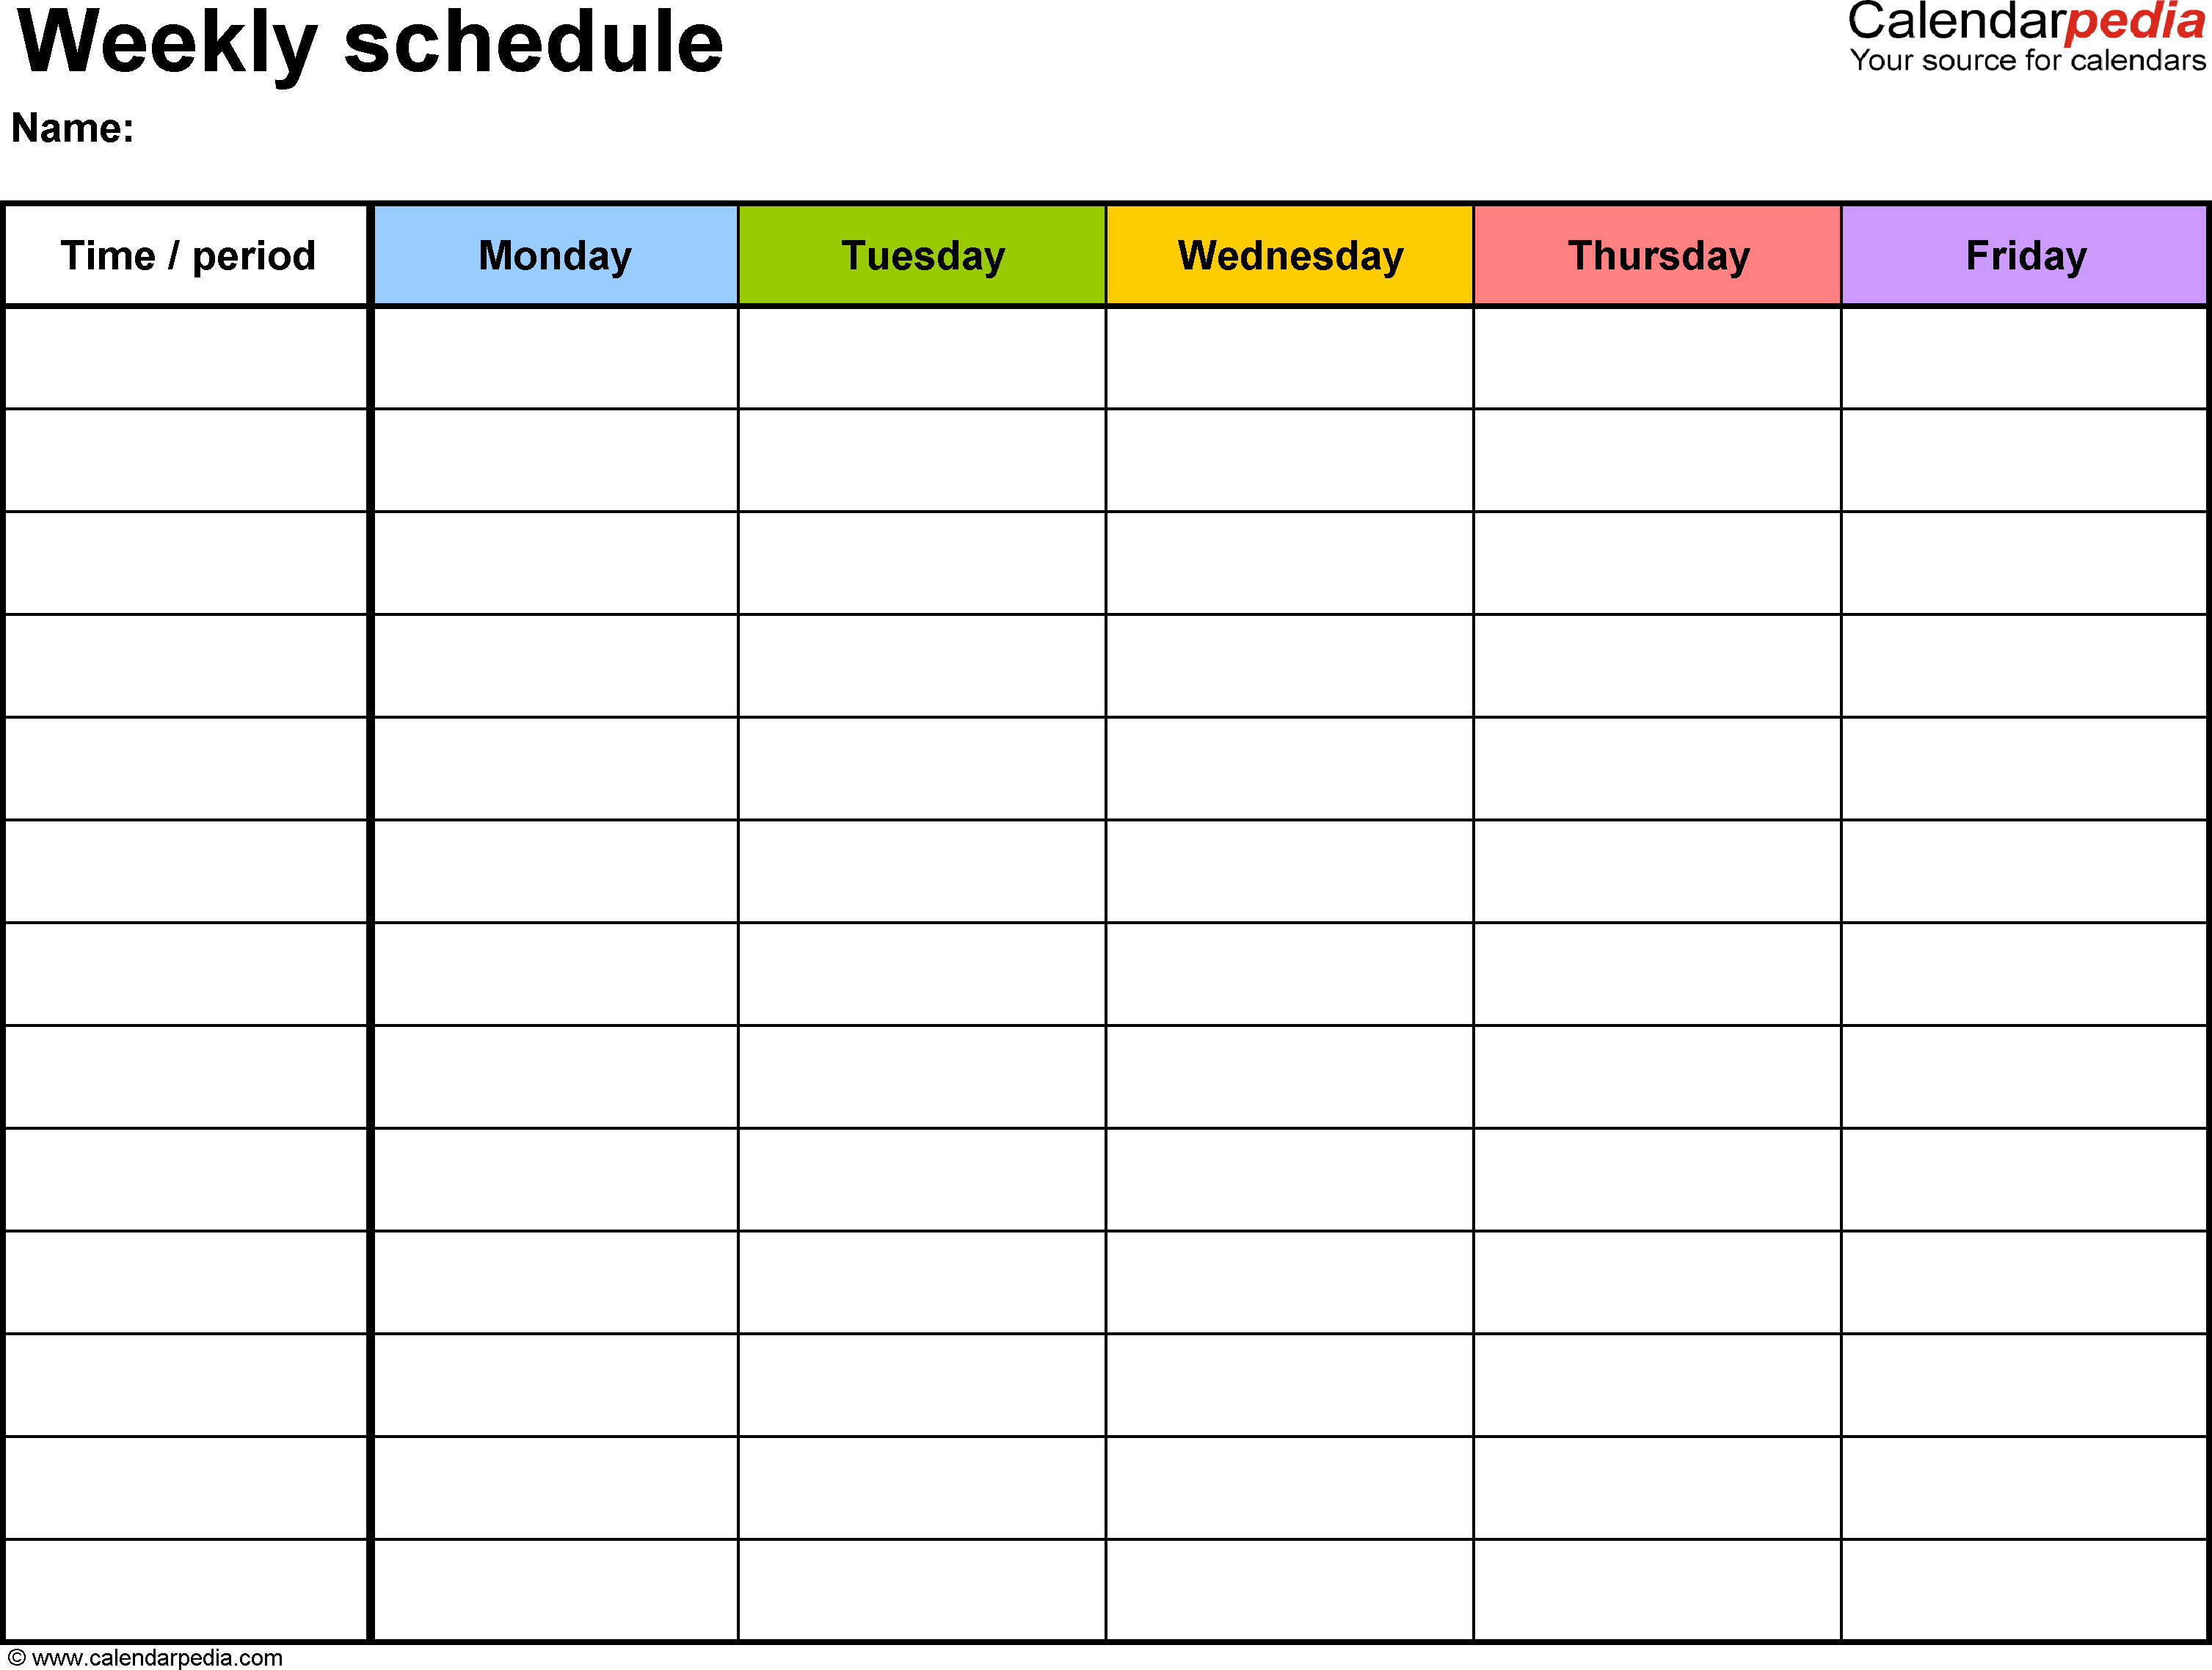 View Weekly Schedule Template